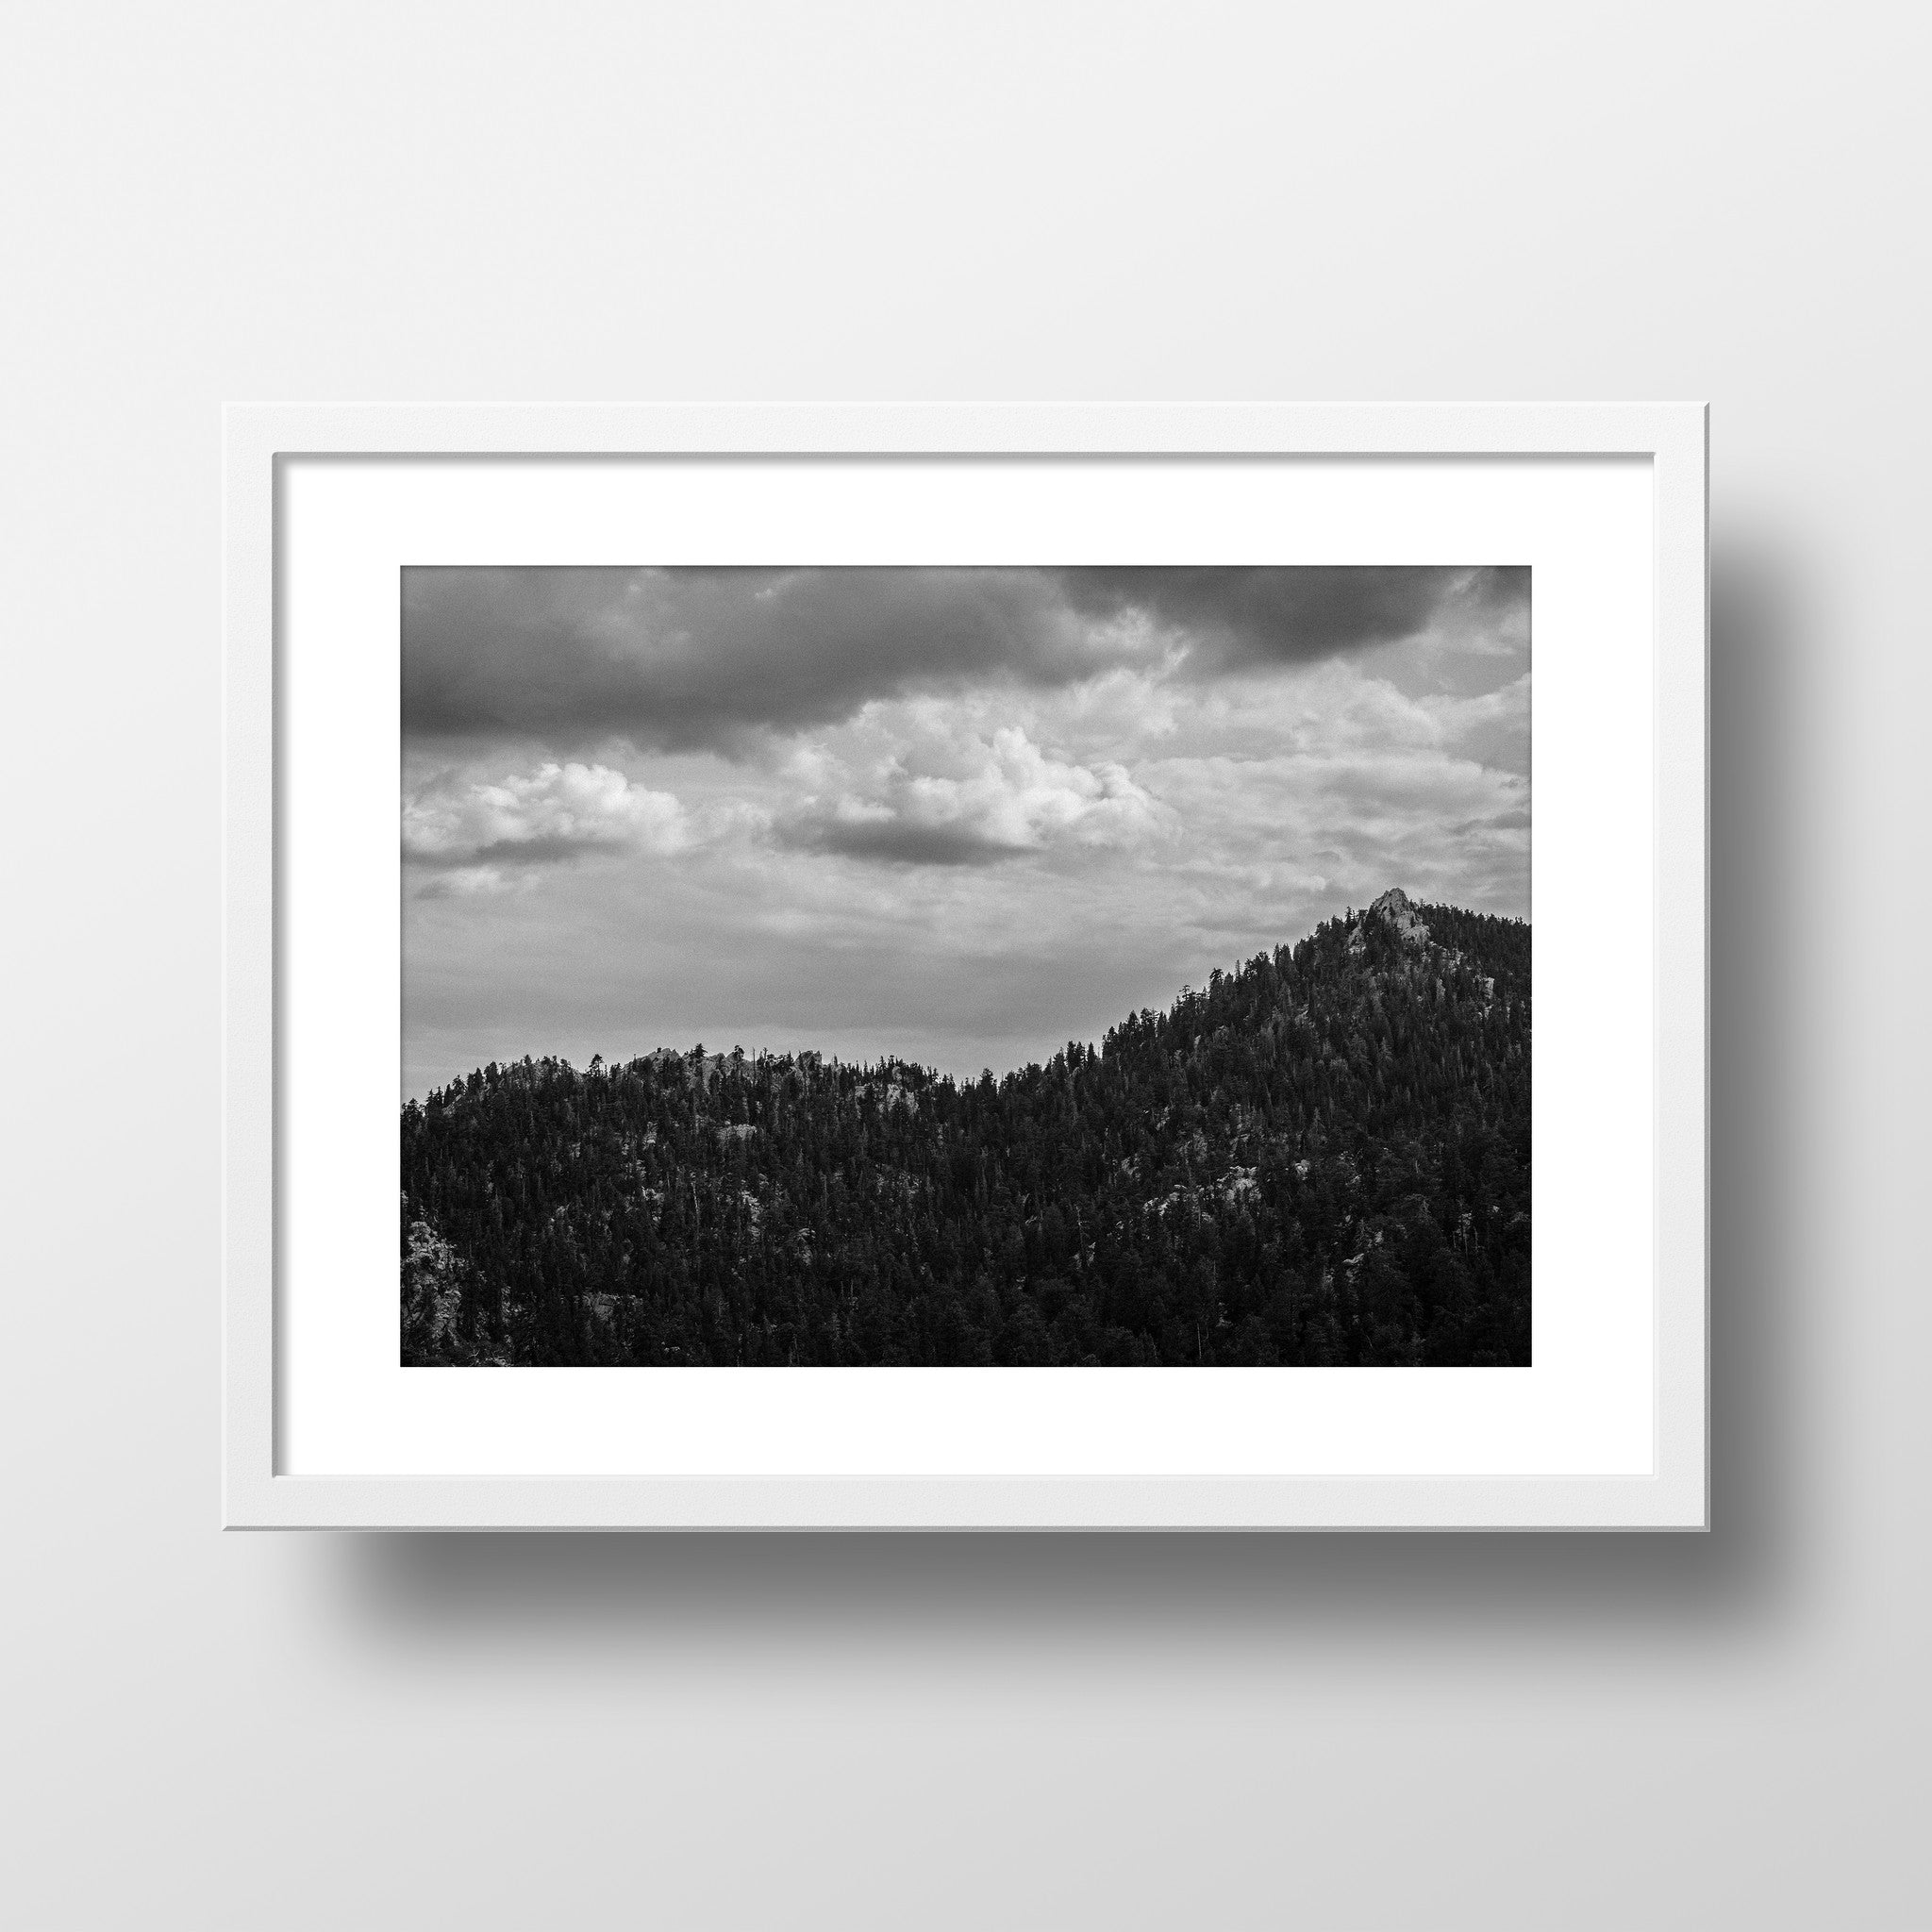 """Ridgeline"" Print by Jon Mesic, 18x24"""